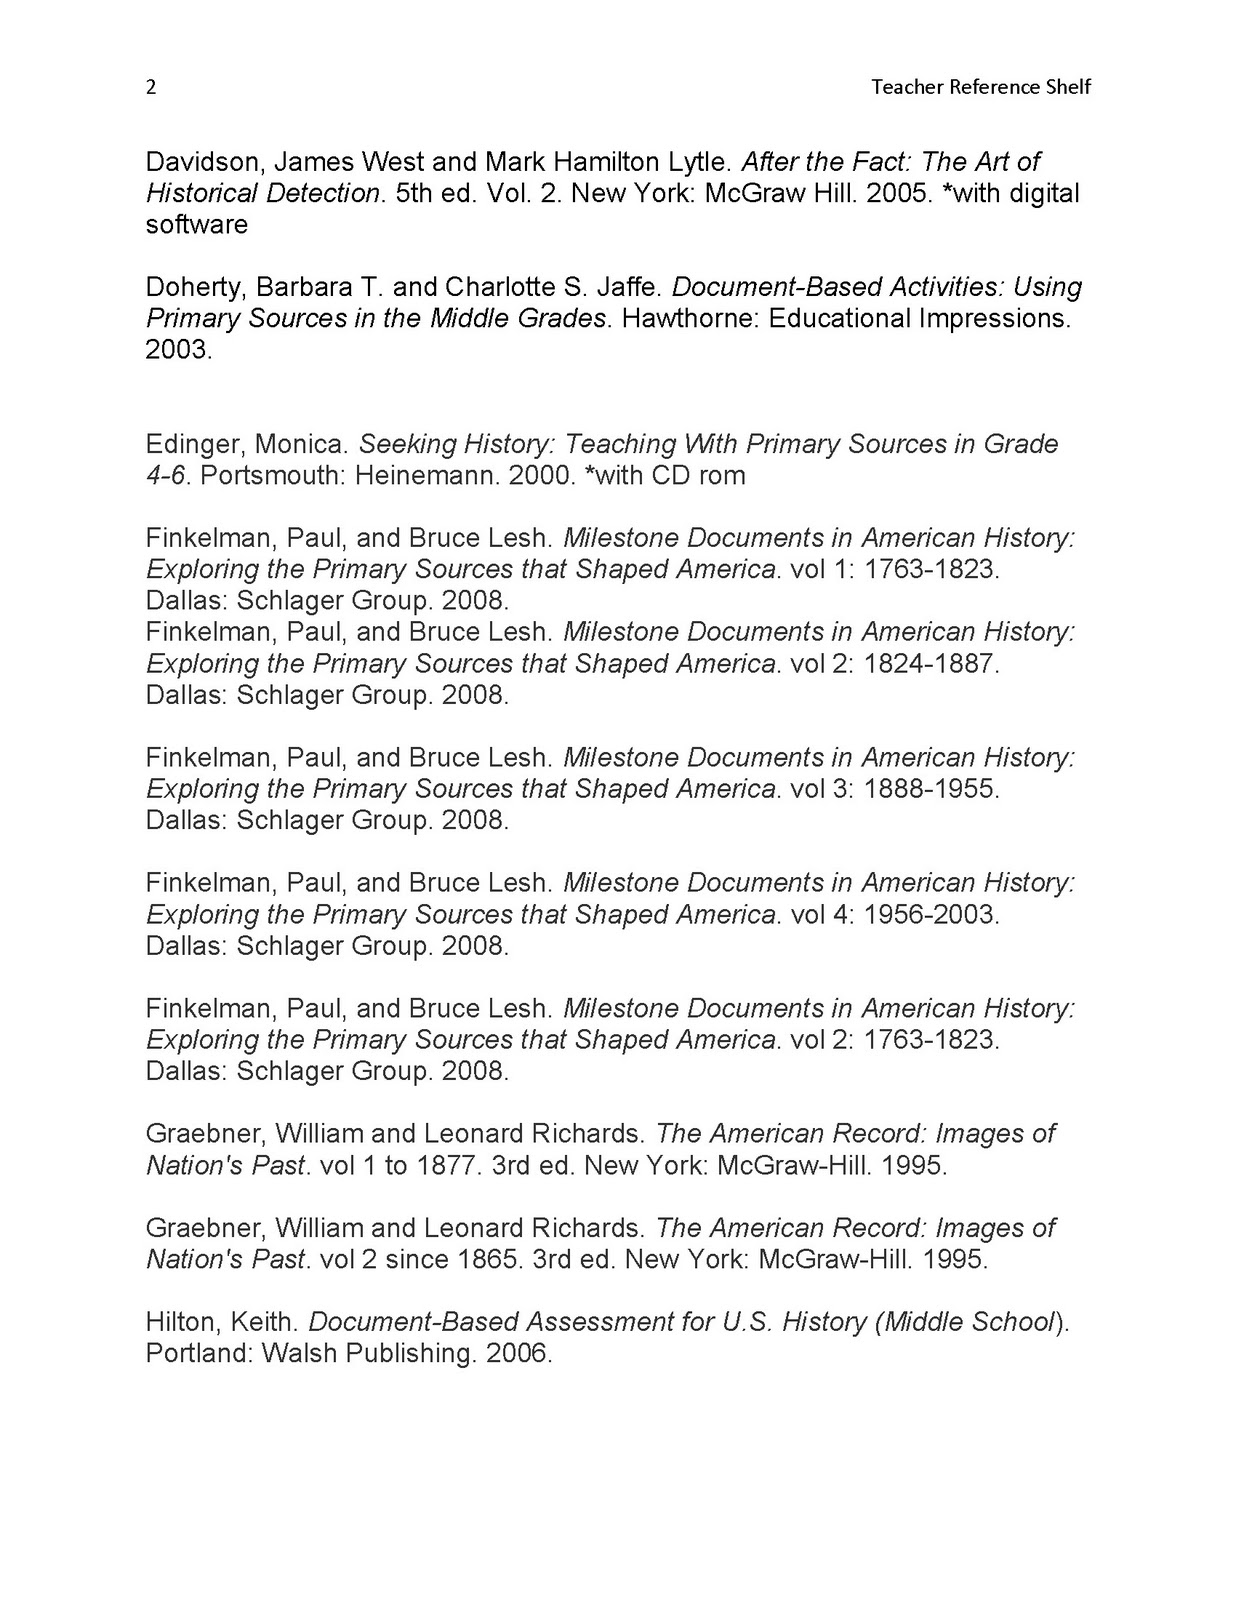 hight resolution of Using Reference Sources Worksheet   Printable Worksheets and Activities for  Teachers